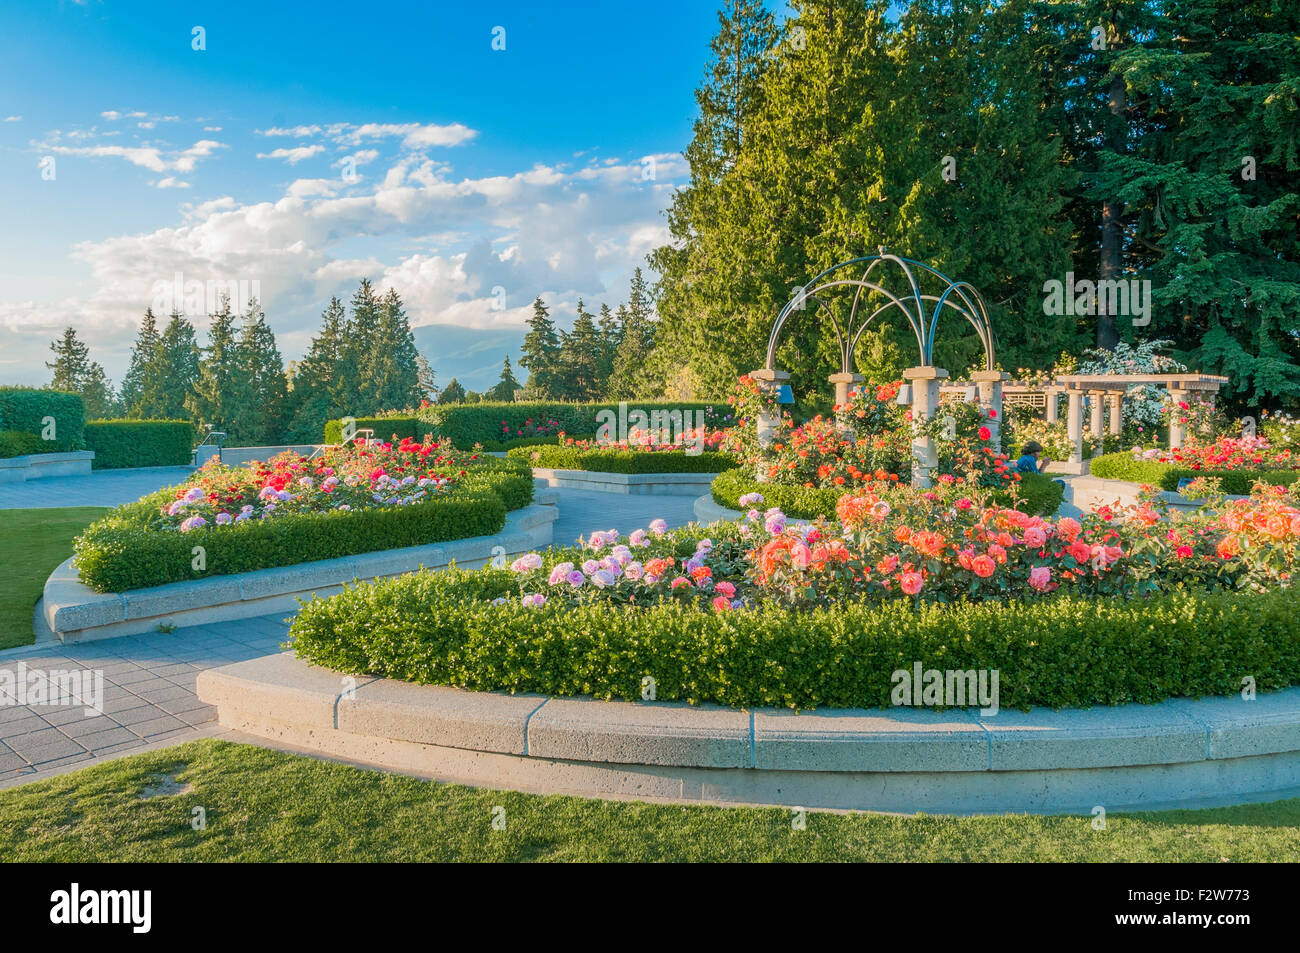 Superb The Rose Garden, UBC, Vancouver, British Columbia, Canada   Stock Image